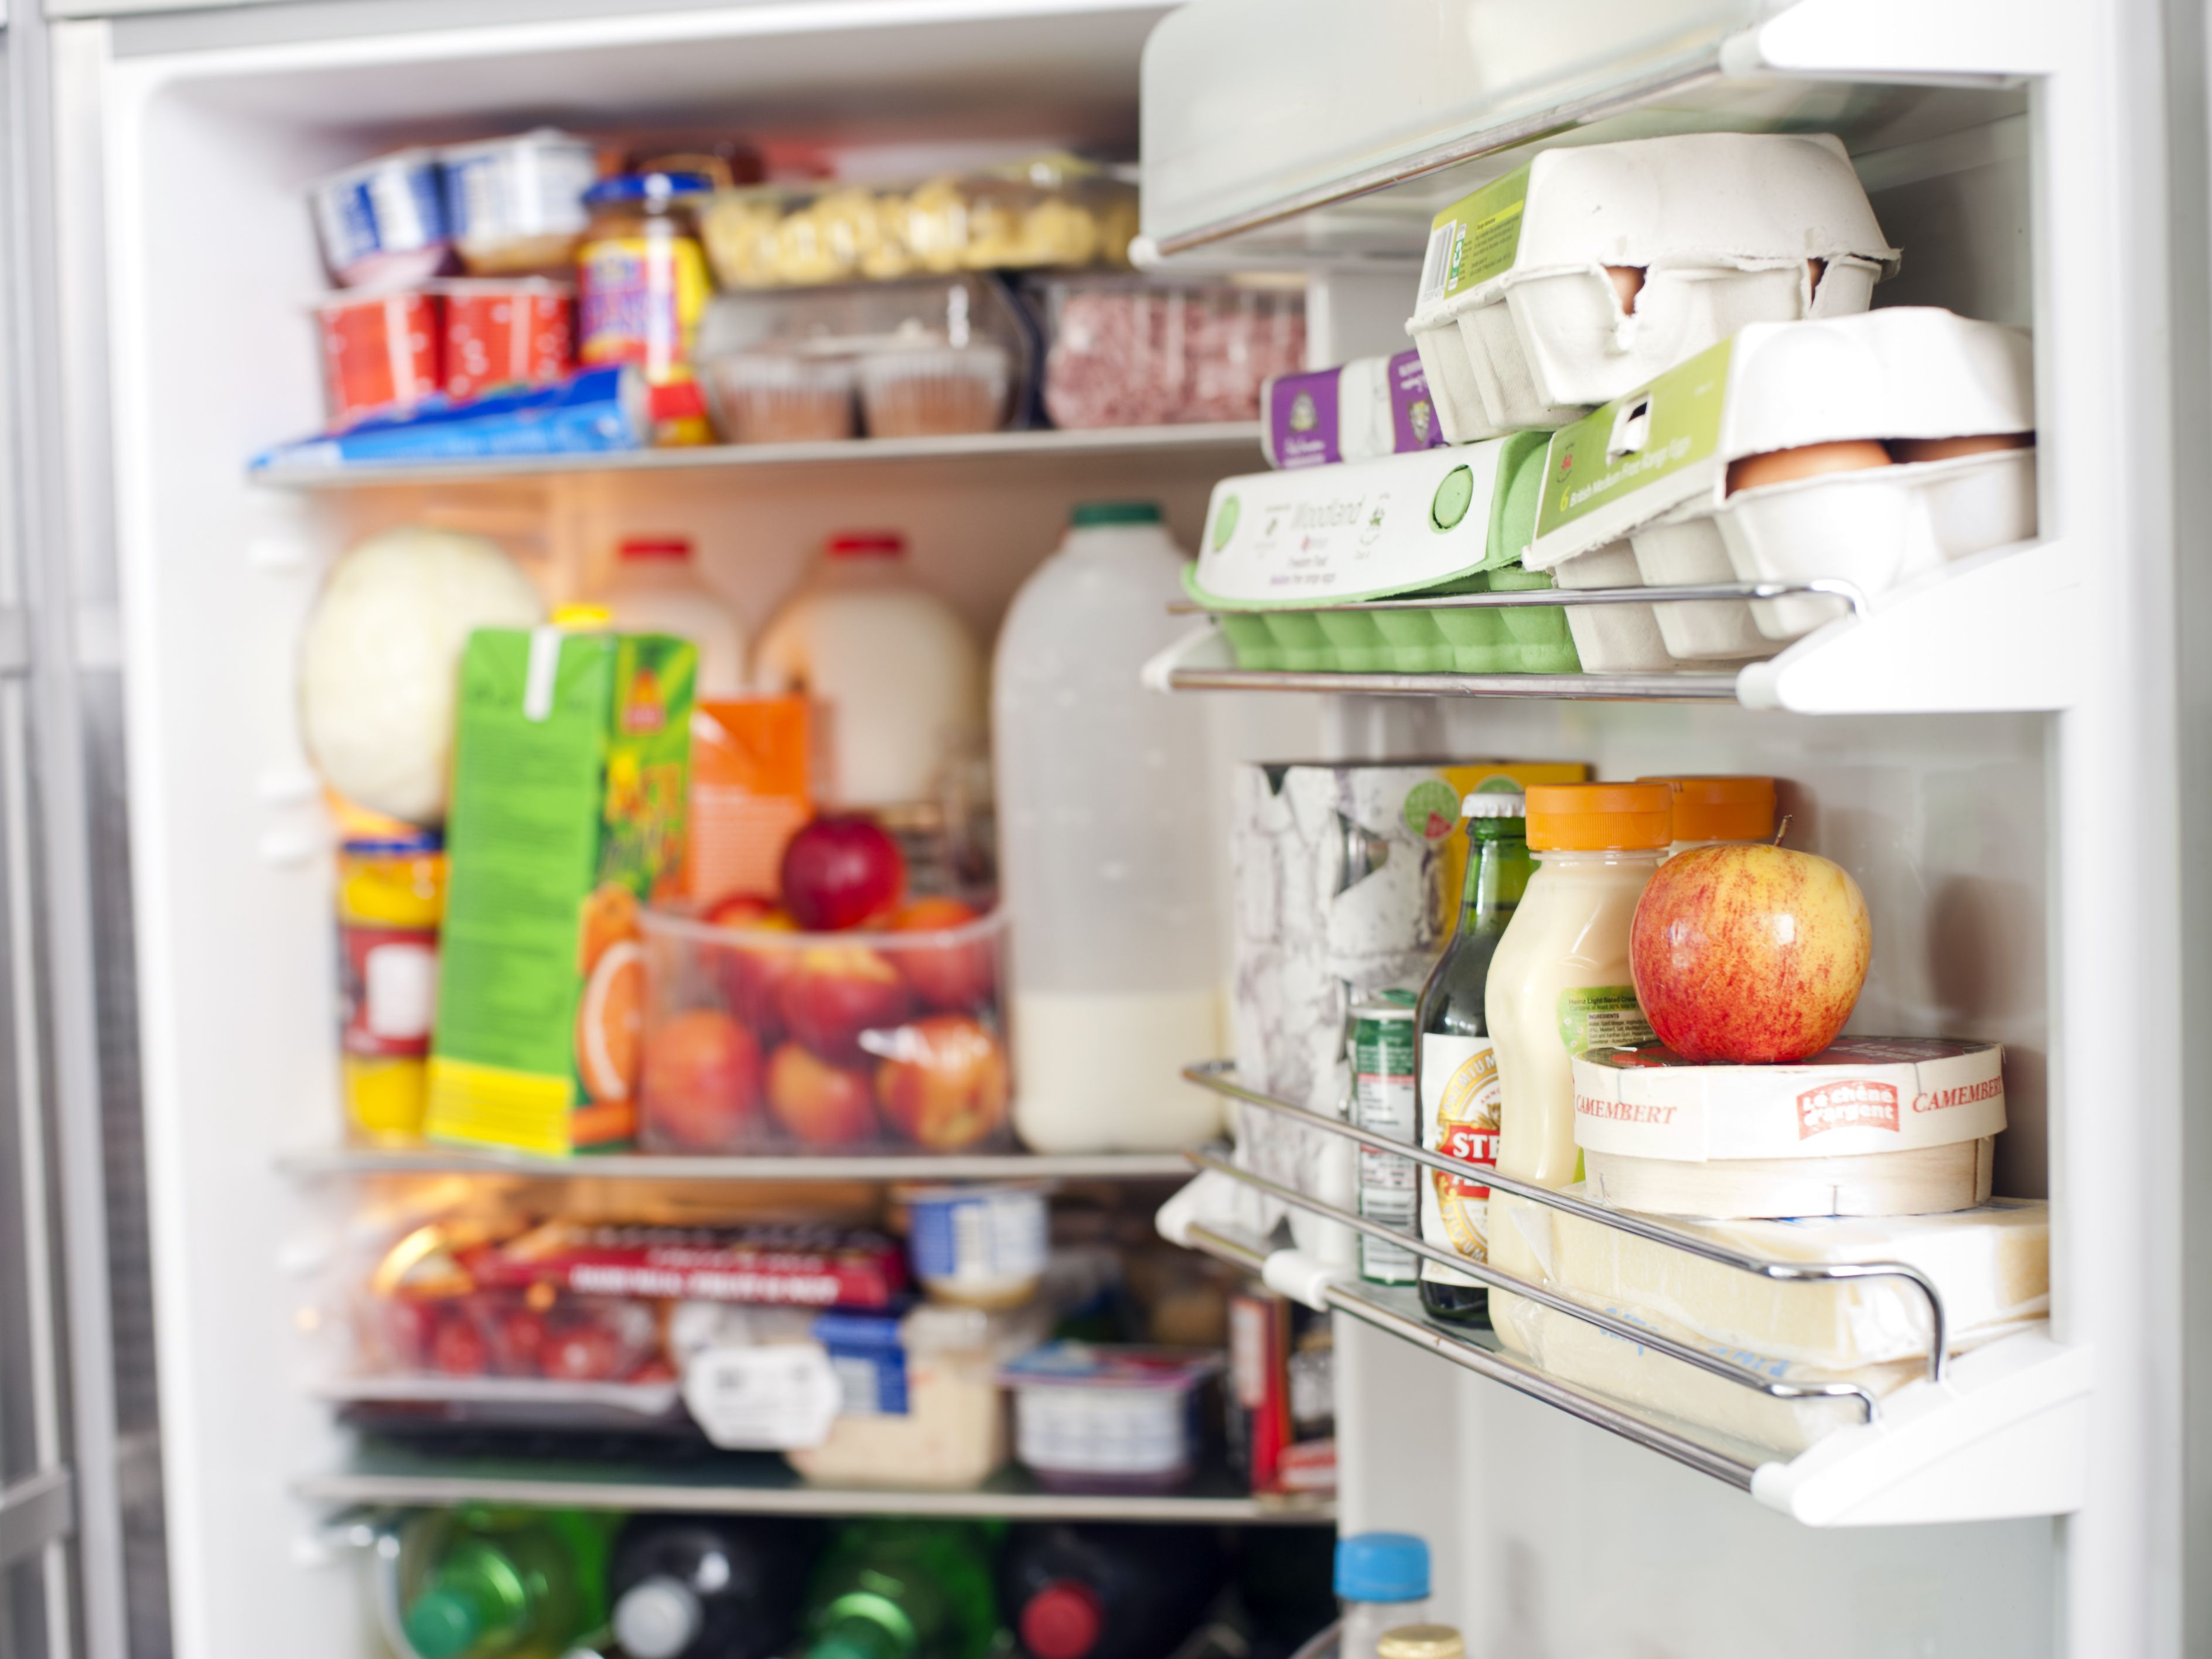 Steps to Reduce Your Refrigerator's Energy Cost